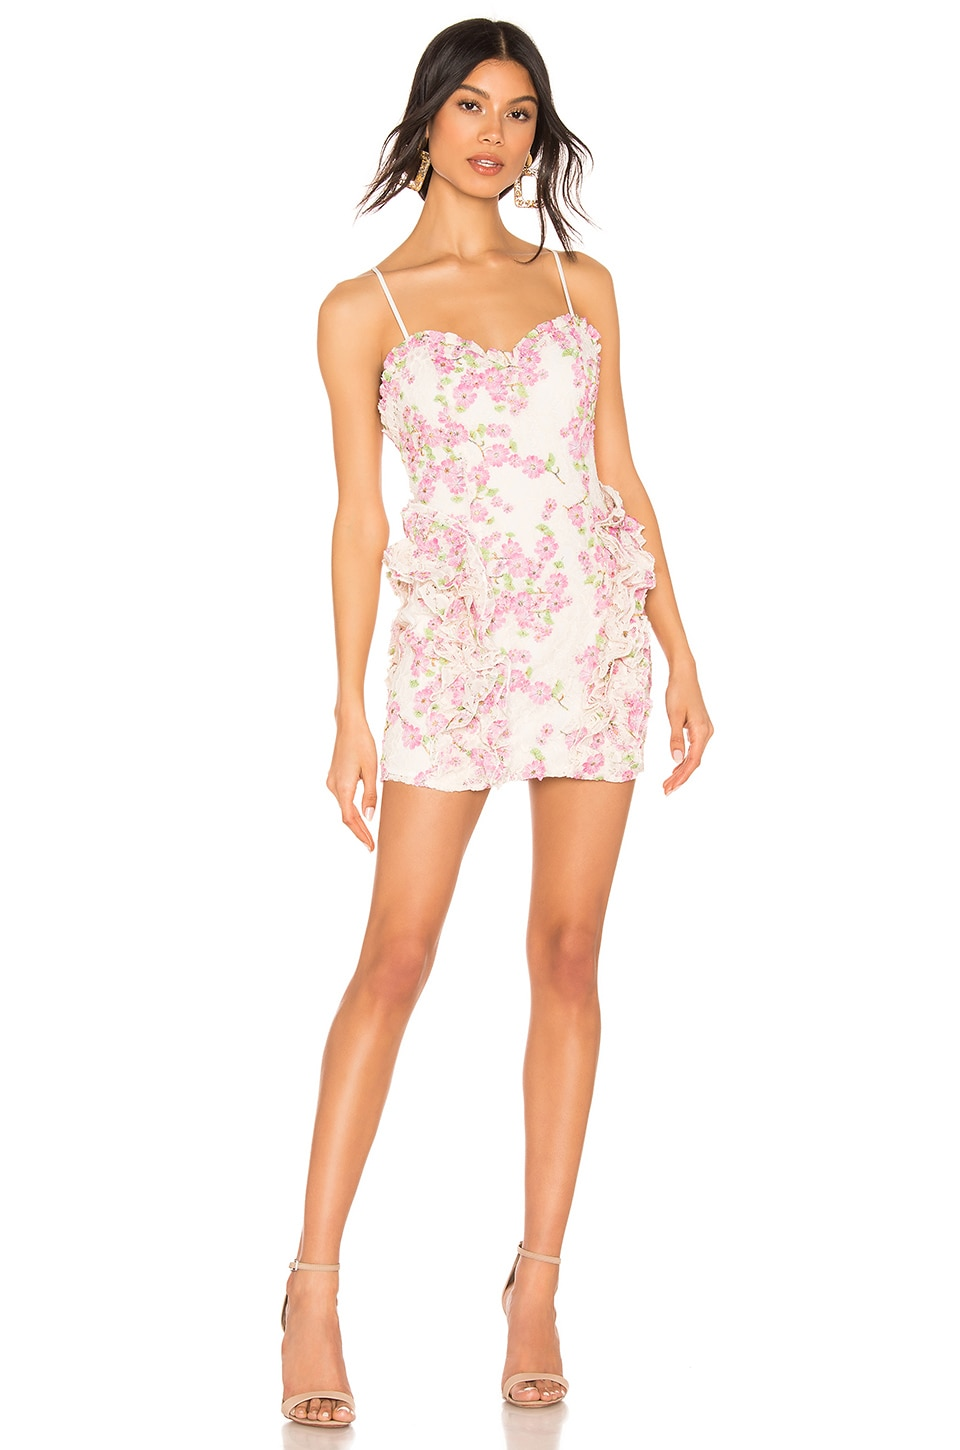 X by NBD Lovely Mini Dress in Pink & Ivory Ground